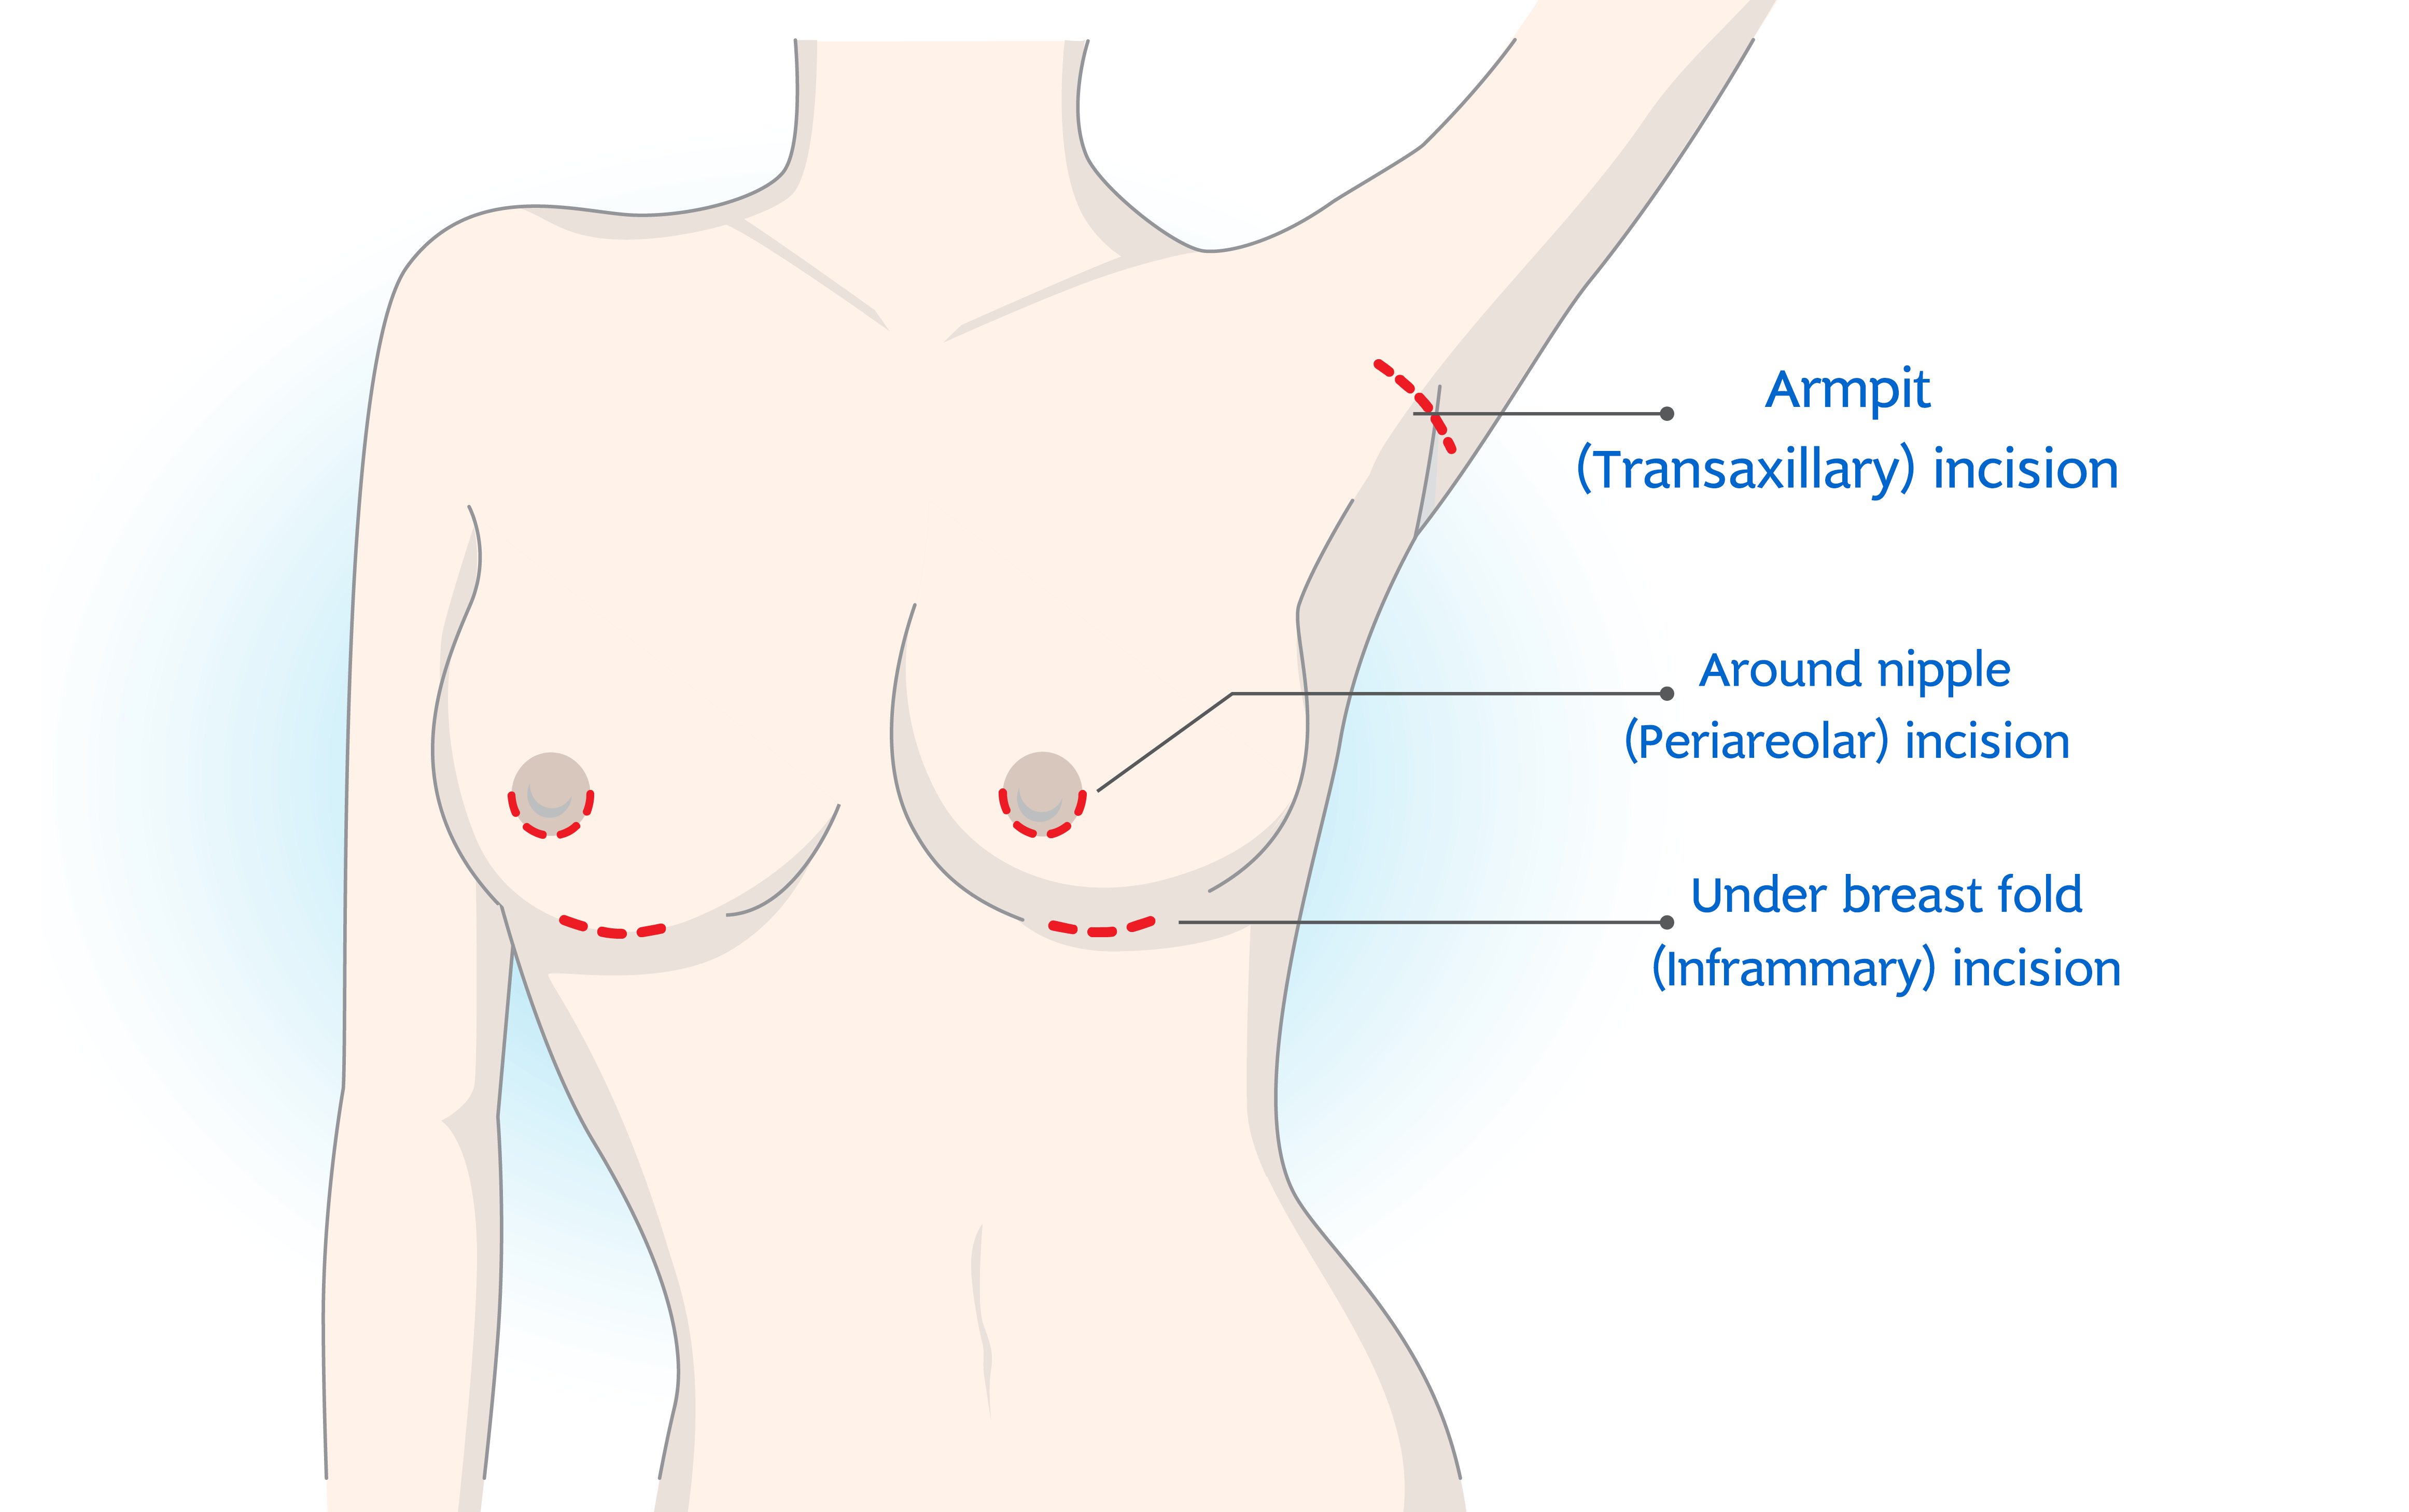 Position of the Incision